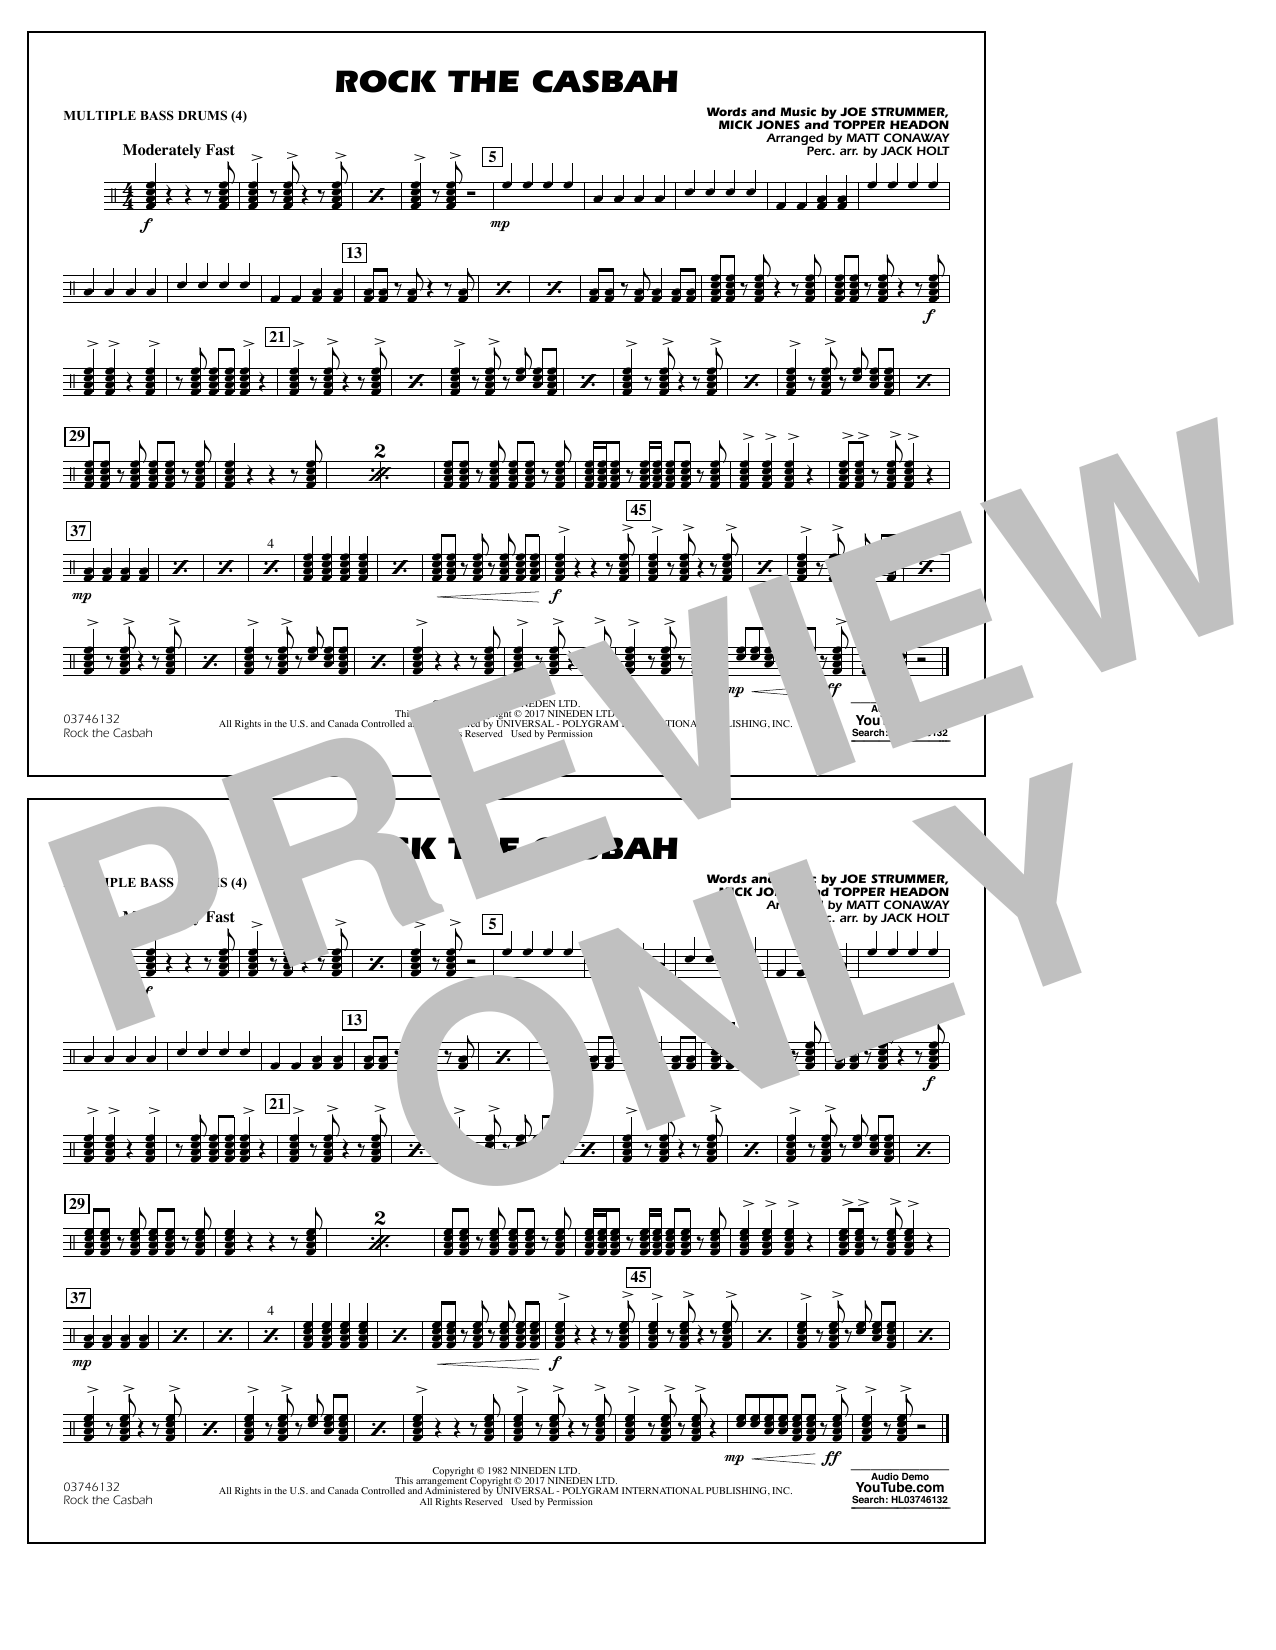 Rock the Casbah - Multiple Bass Drums Sheet Music